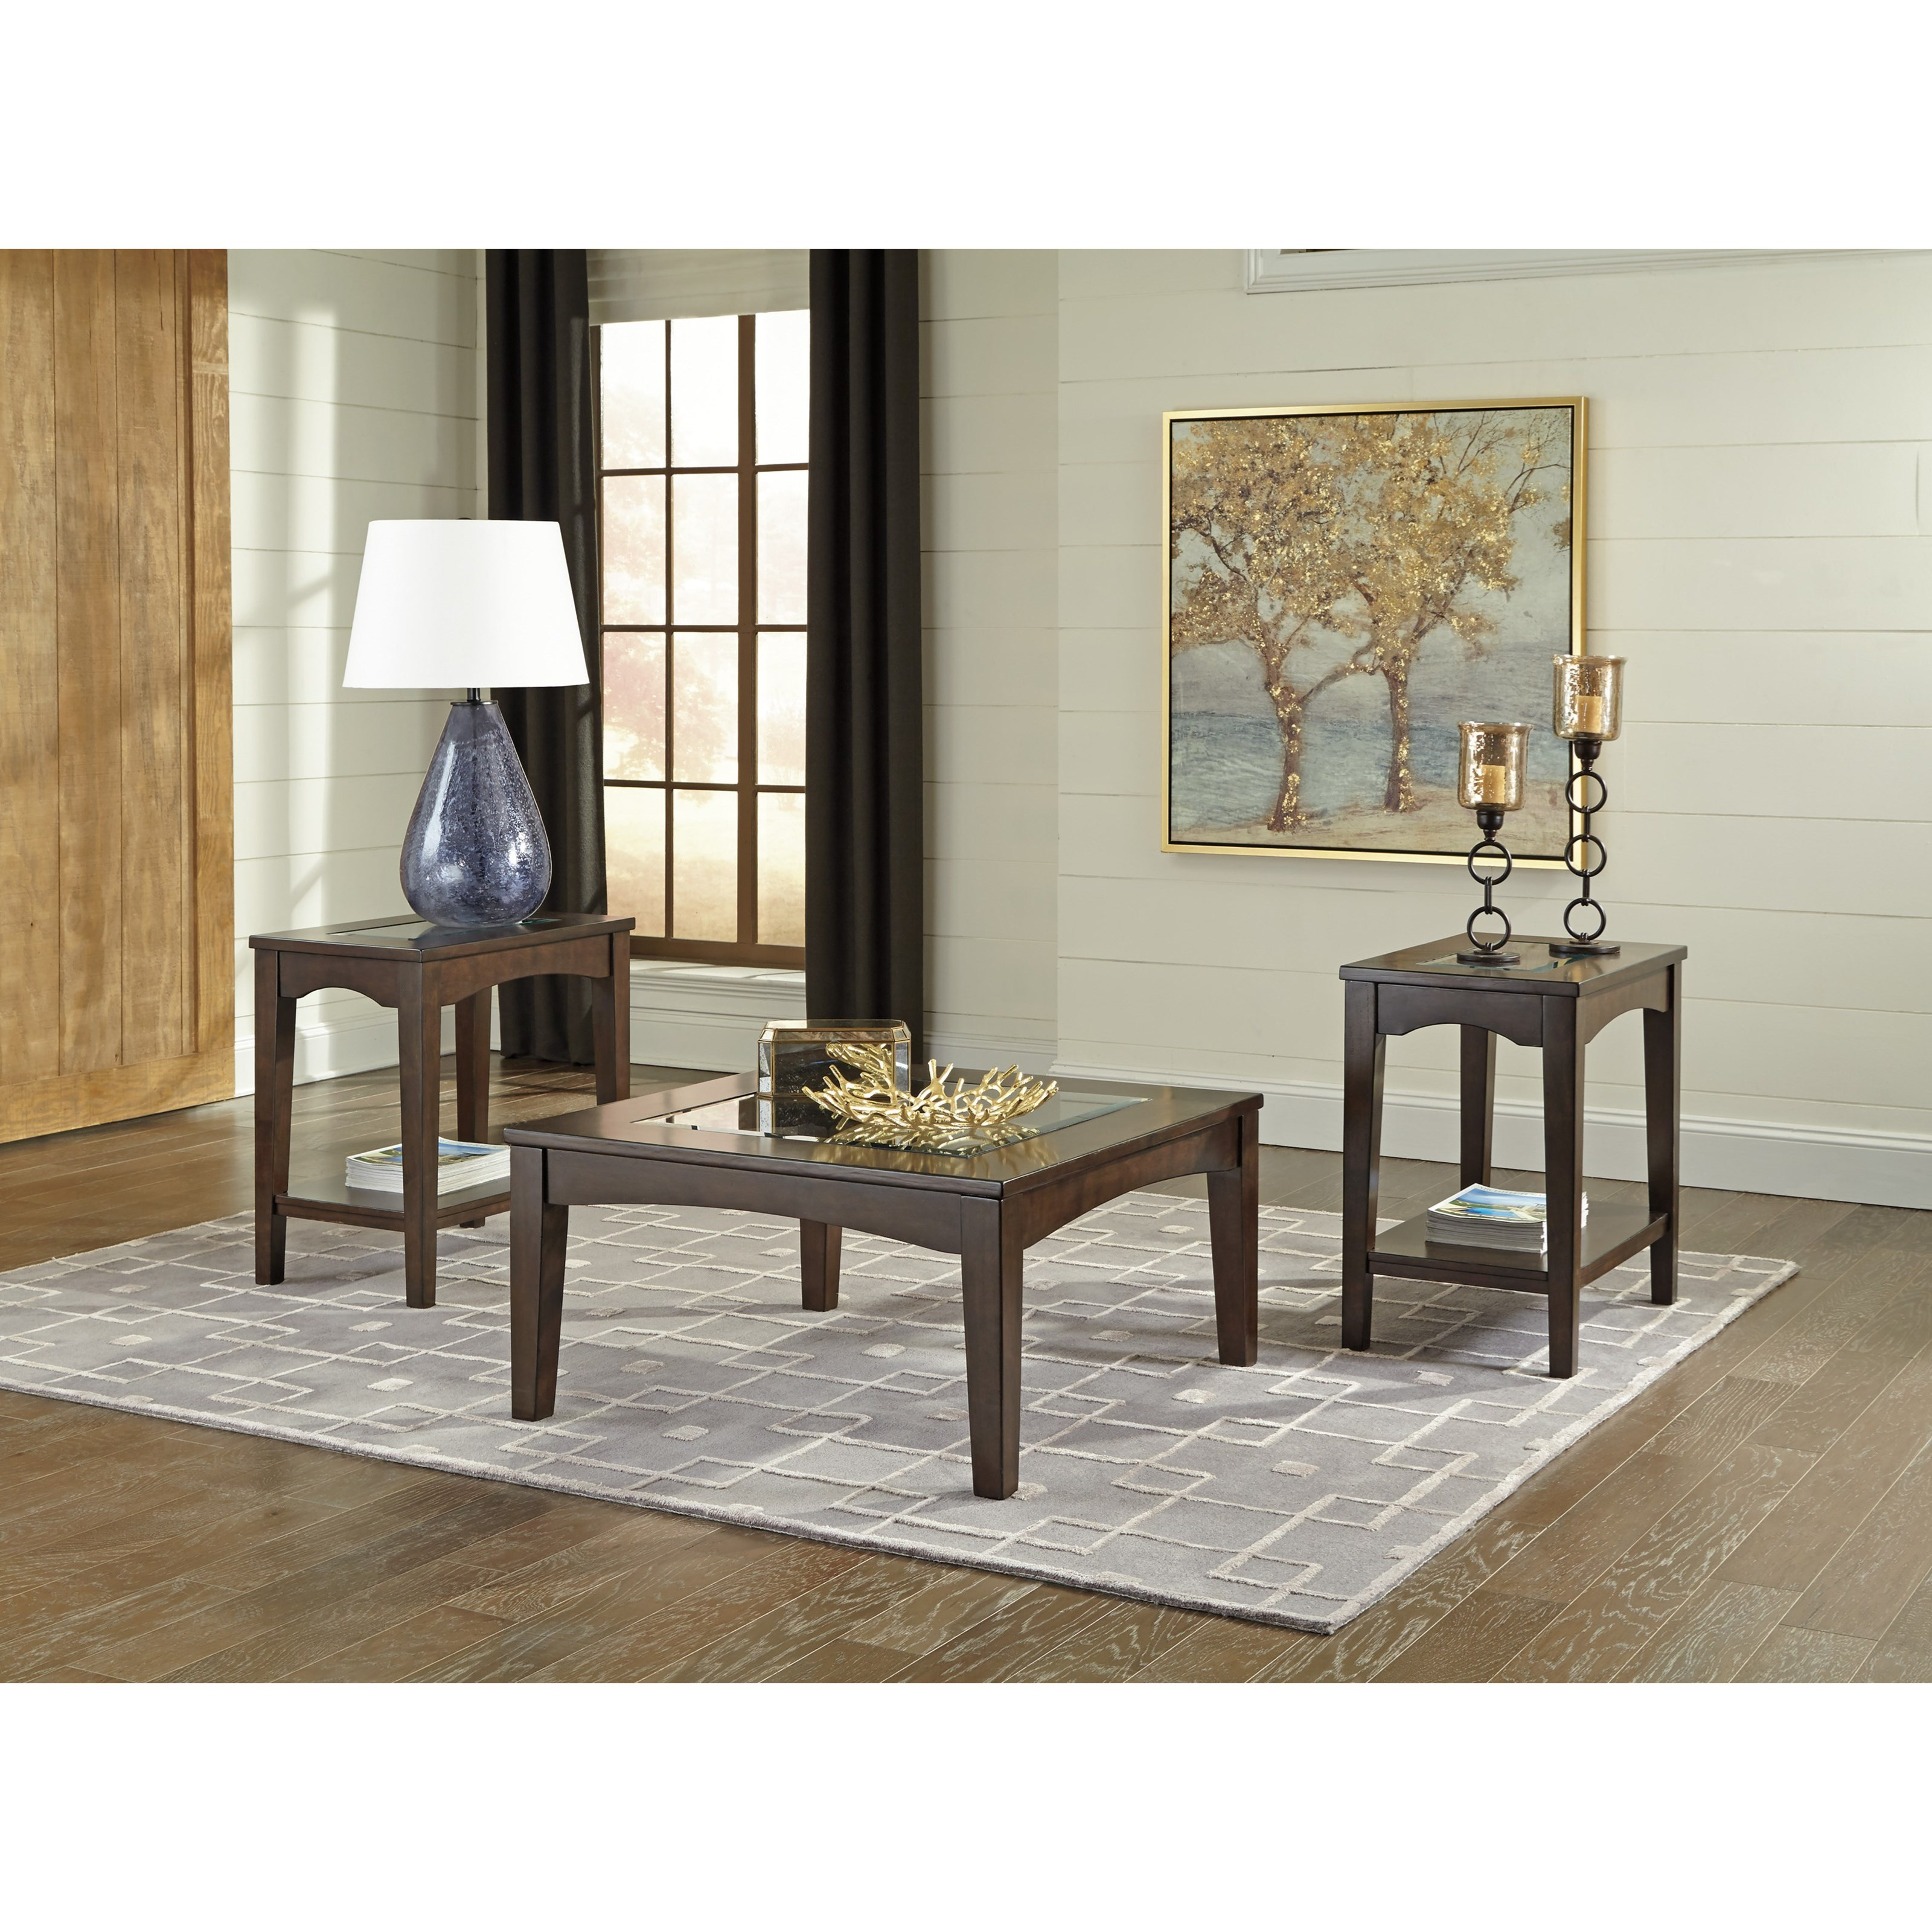 Cronnily 3 Piece Transitional Occasional Table Set With Framed Tempered Glass Top Belfort